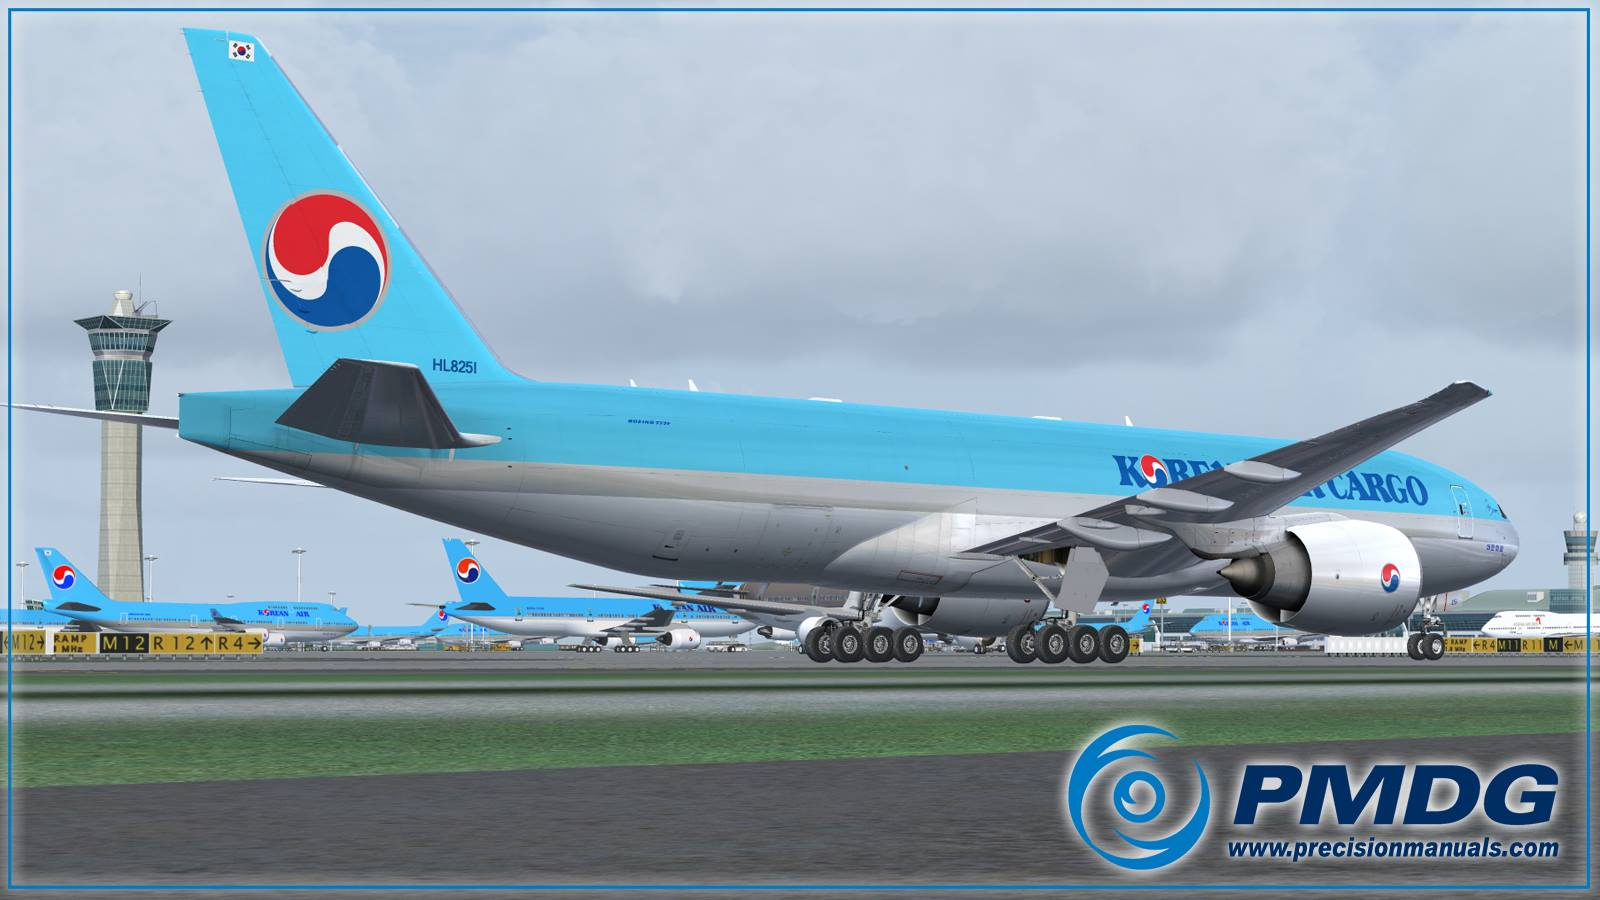 Pmdg 777 liveries preview korean air air india aero logic delta pmdg777koreanpreview korean air publicscrutiny Images